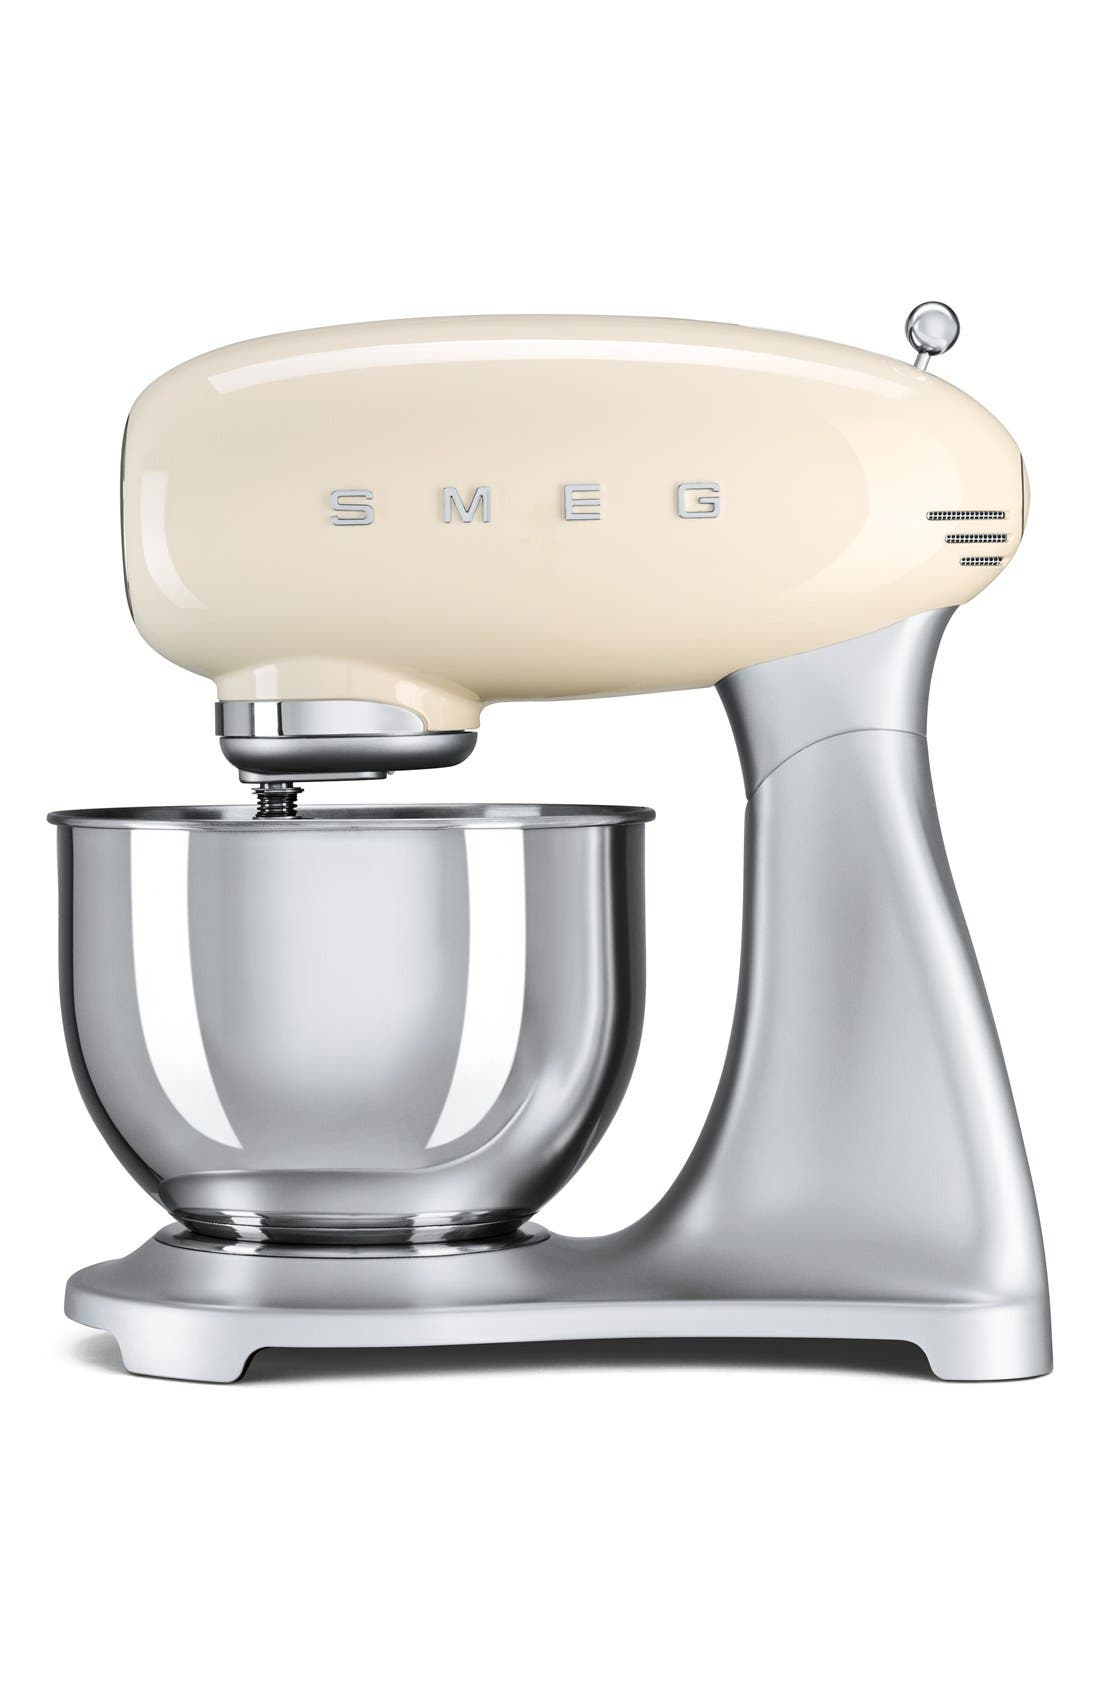 Alternate Image 1 Selected - smeg '50s Retro Style Aesthetic' Five Quart Stand Mixer